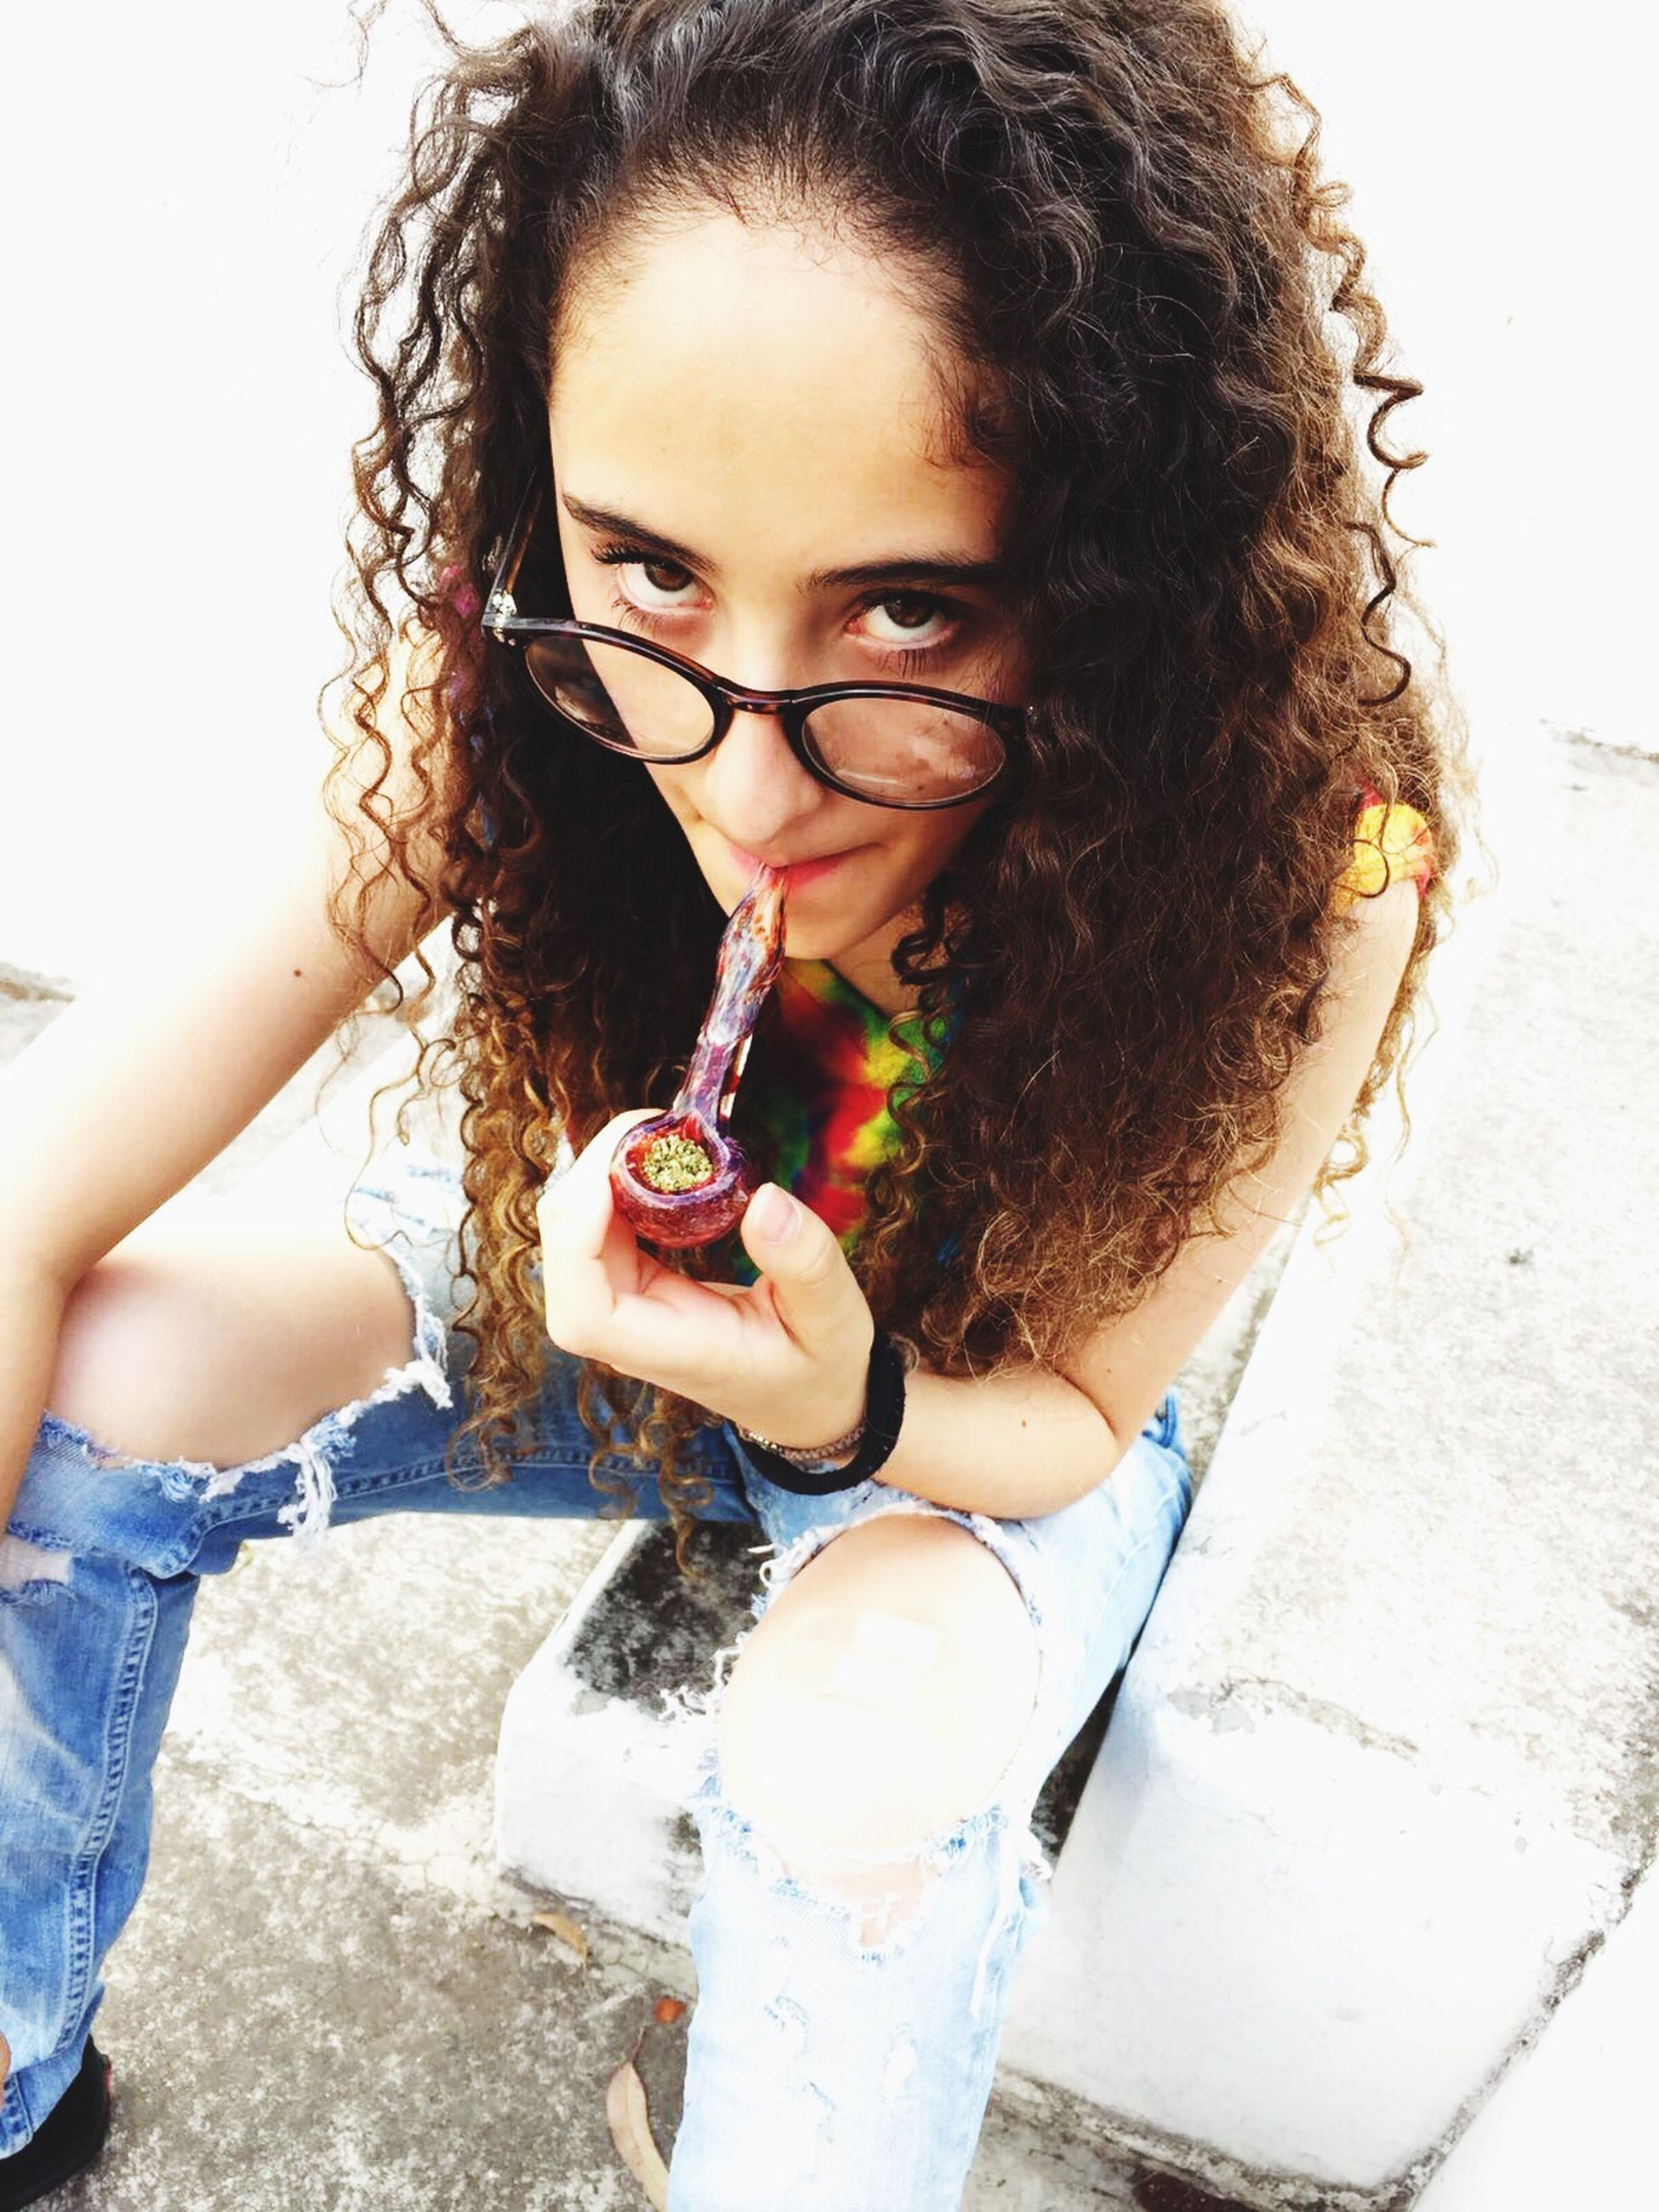 young adult, long hair, beauty, young women, one young woman only, beautiful woman, beautiful people, portrait, one person, curly hair, confidence, close-up, eyeglasses, human lips, women, people, real people, outdoors, one woman only, adult, adults only, day, only women, freshness, human body part